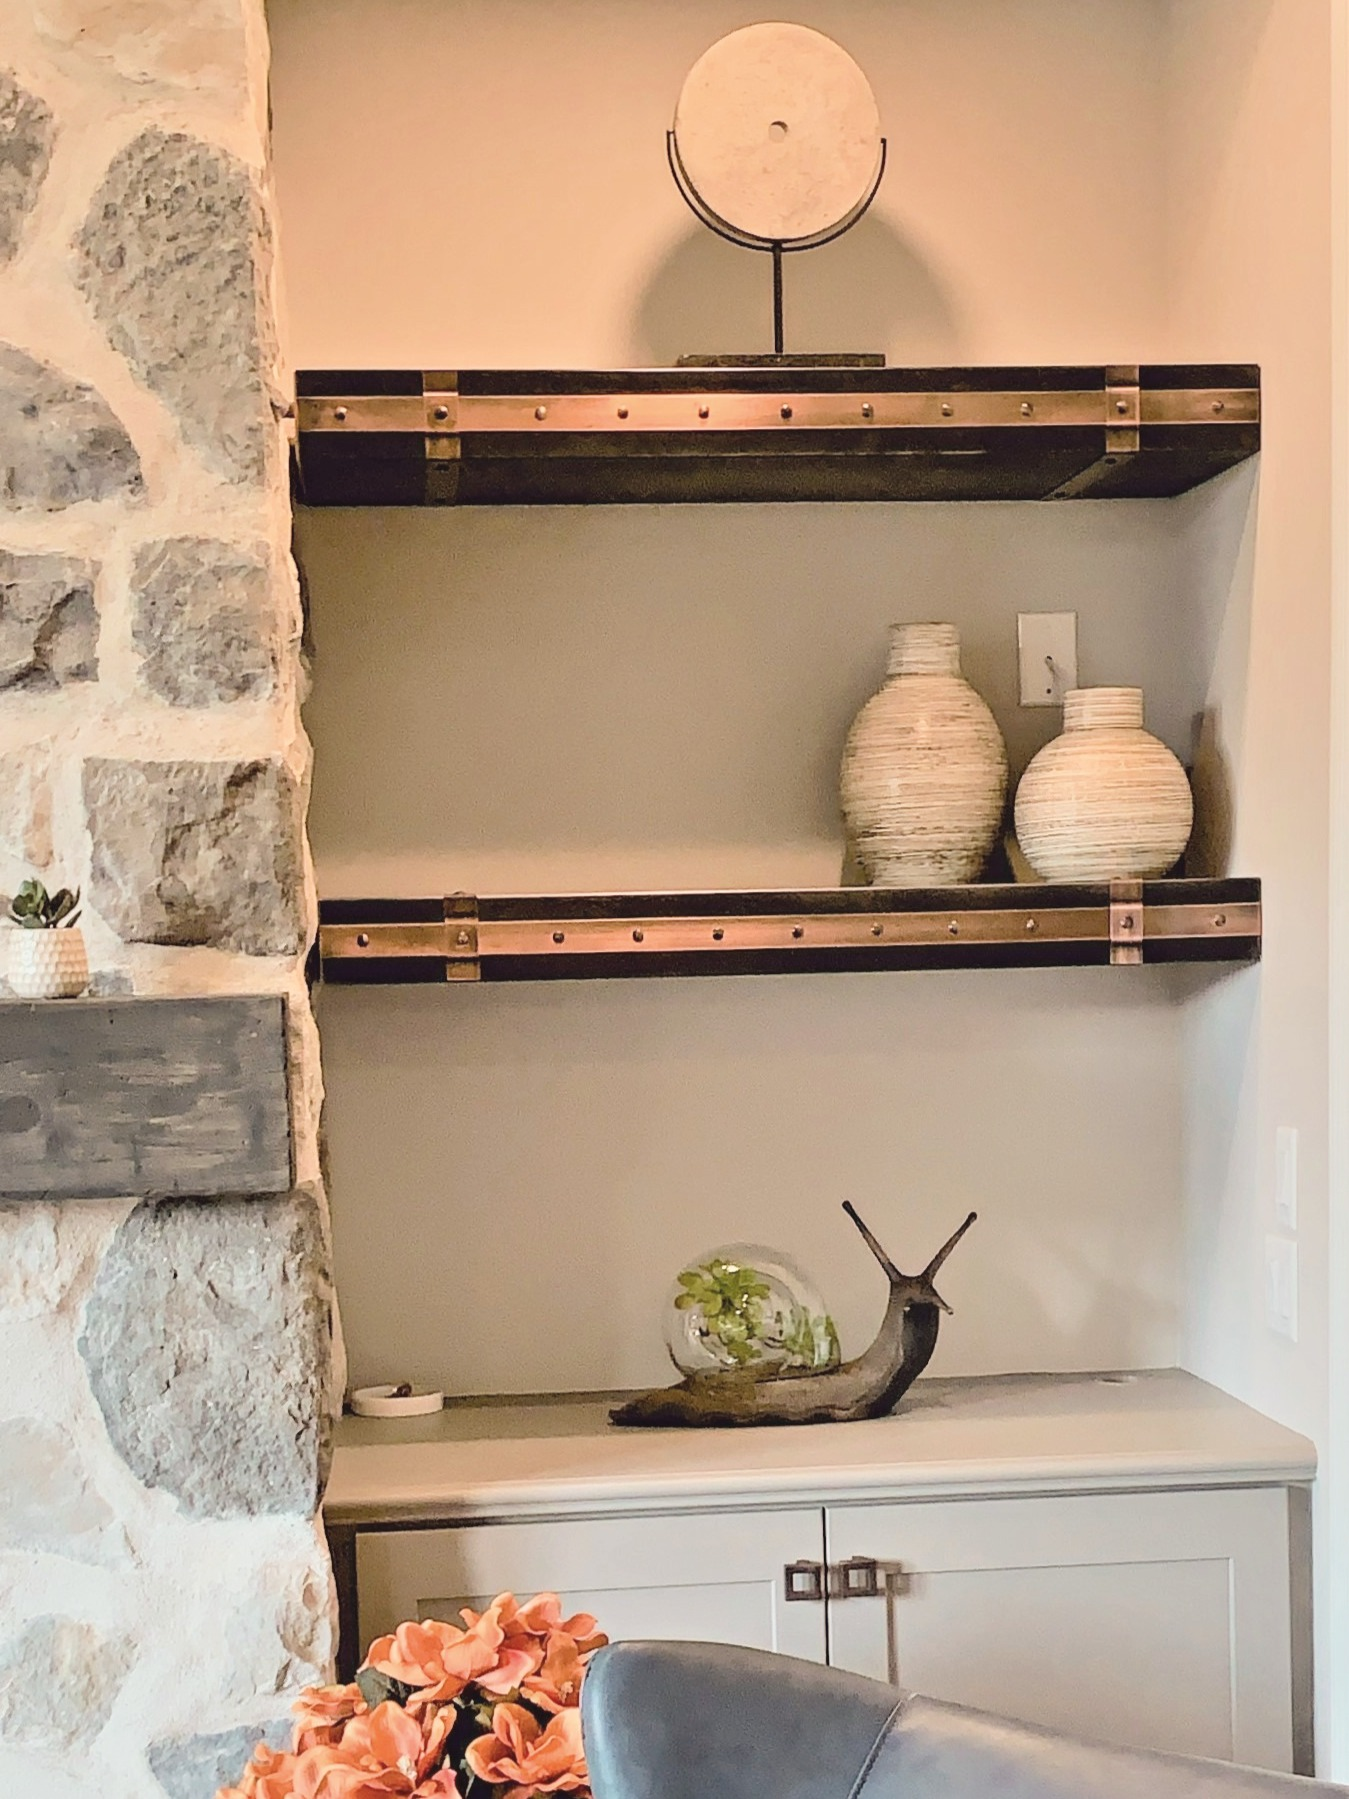 Aged Steel shelves with Copper Strapping